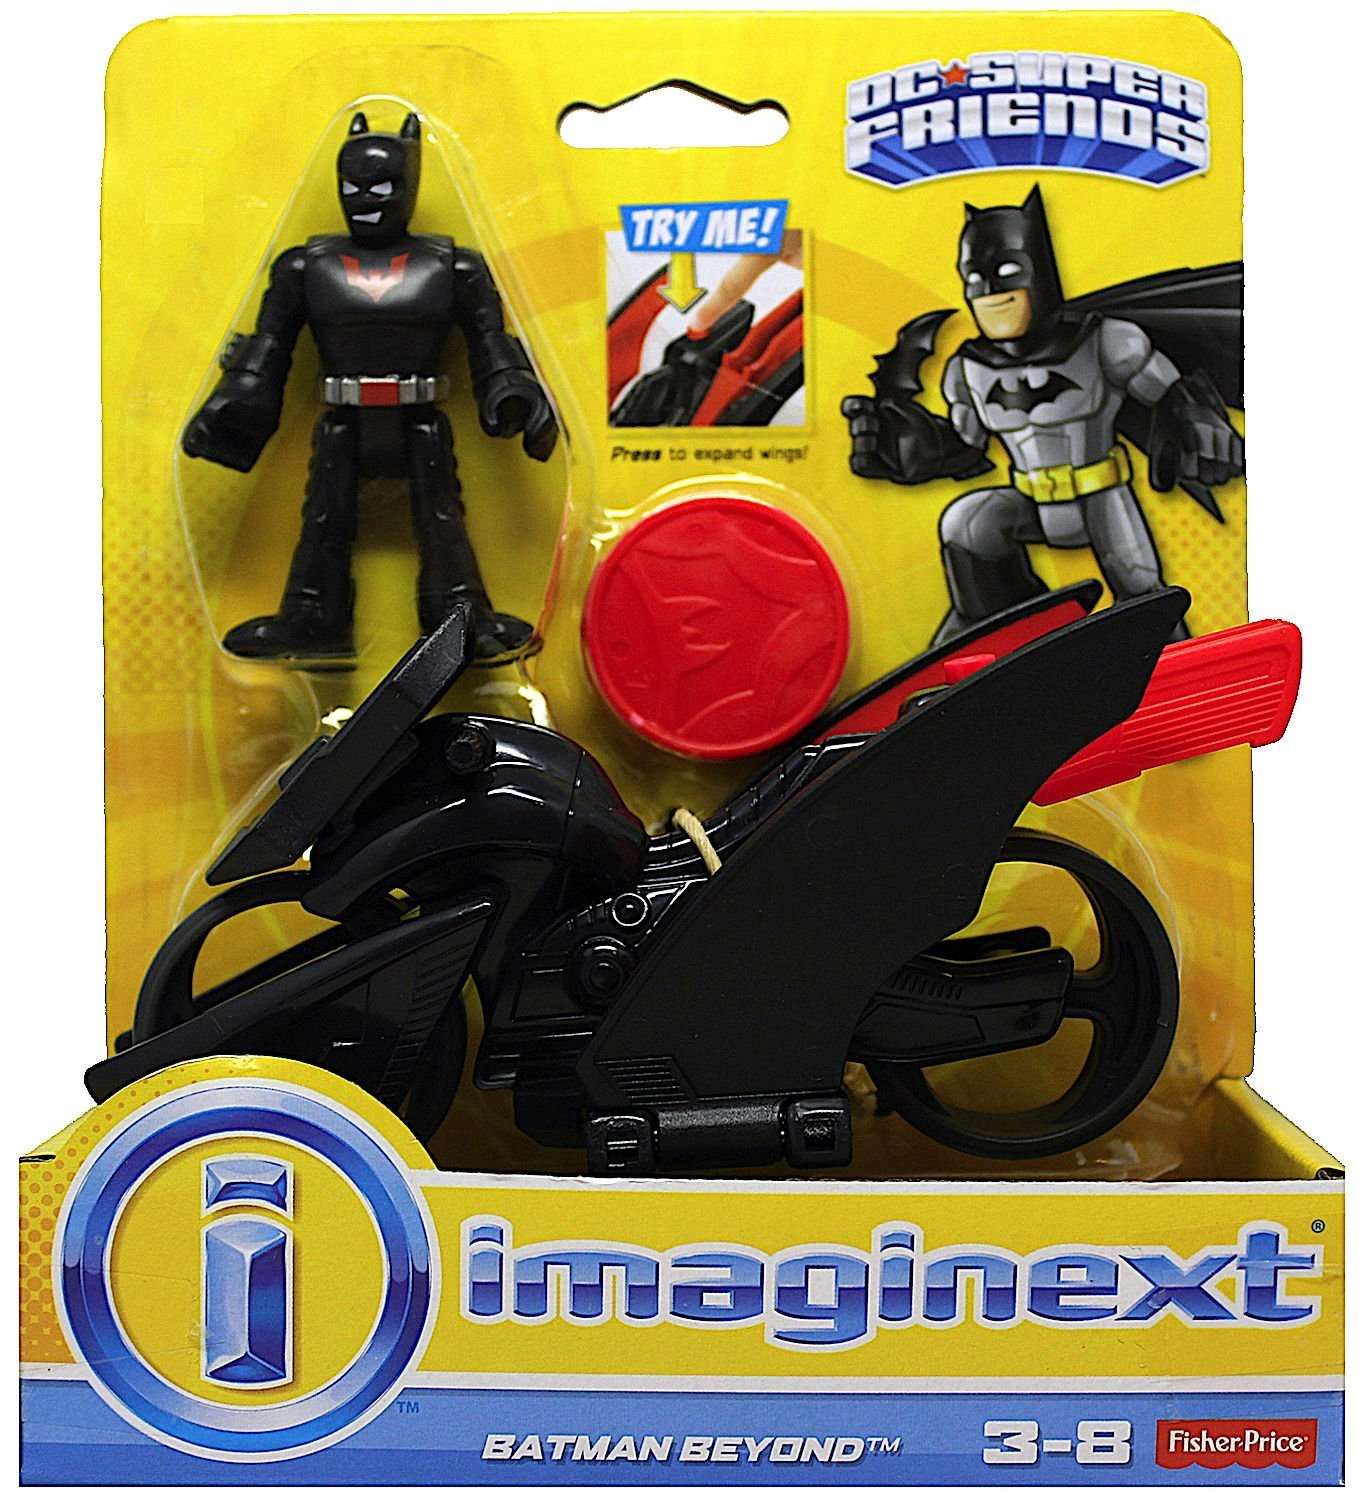 Action Figures Clever Imaginext Batman Battle Shifterz Batman Figure